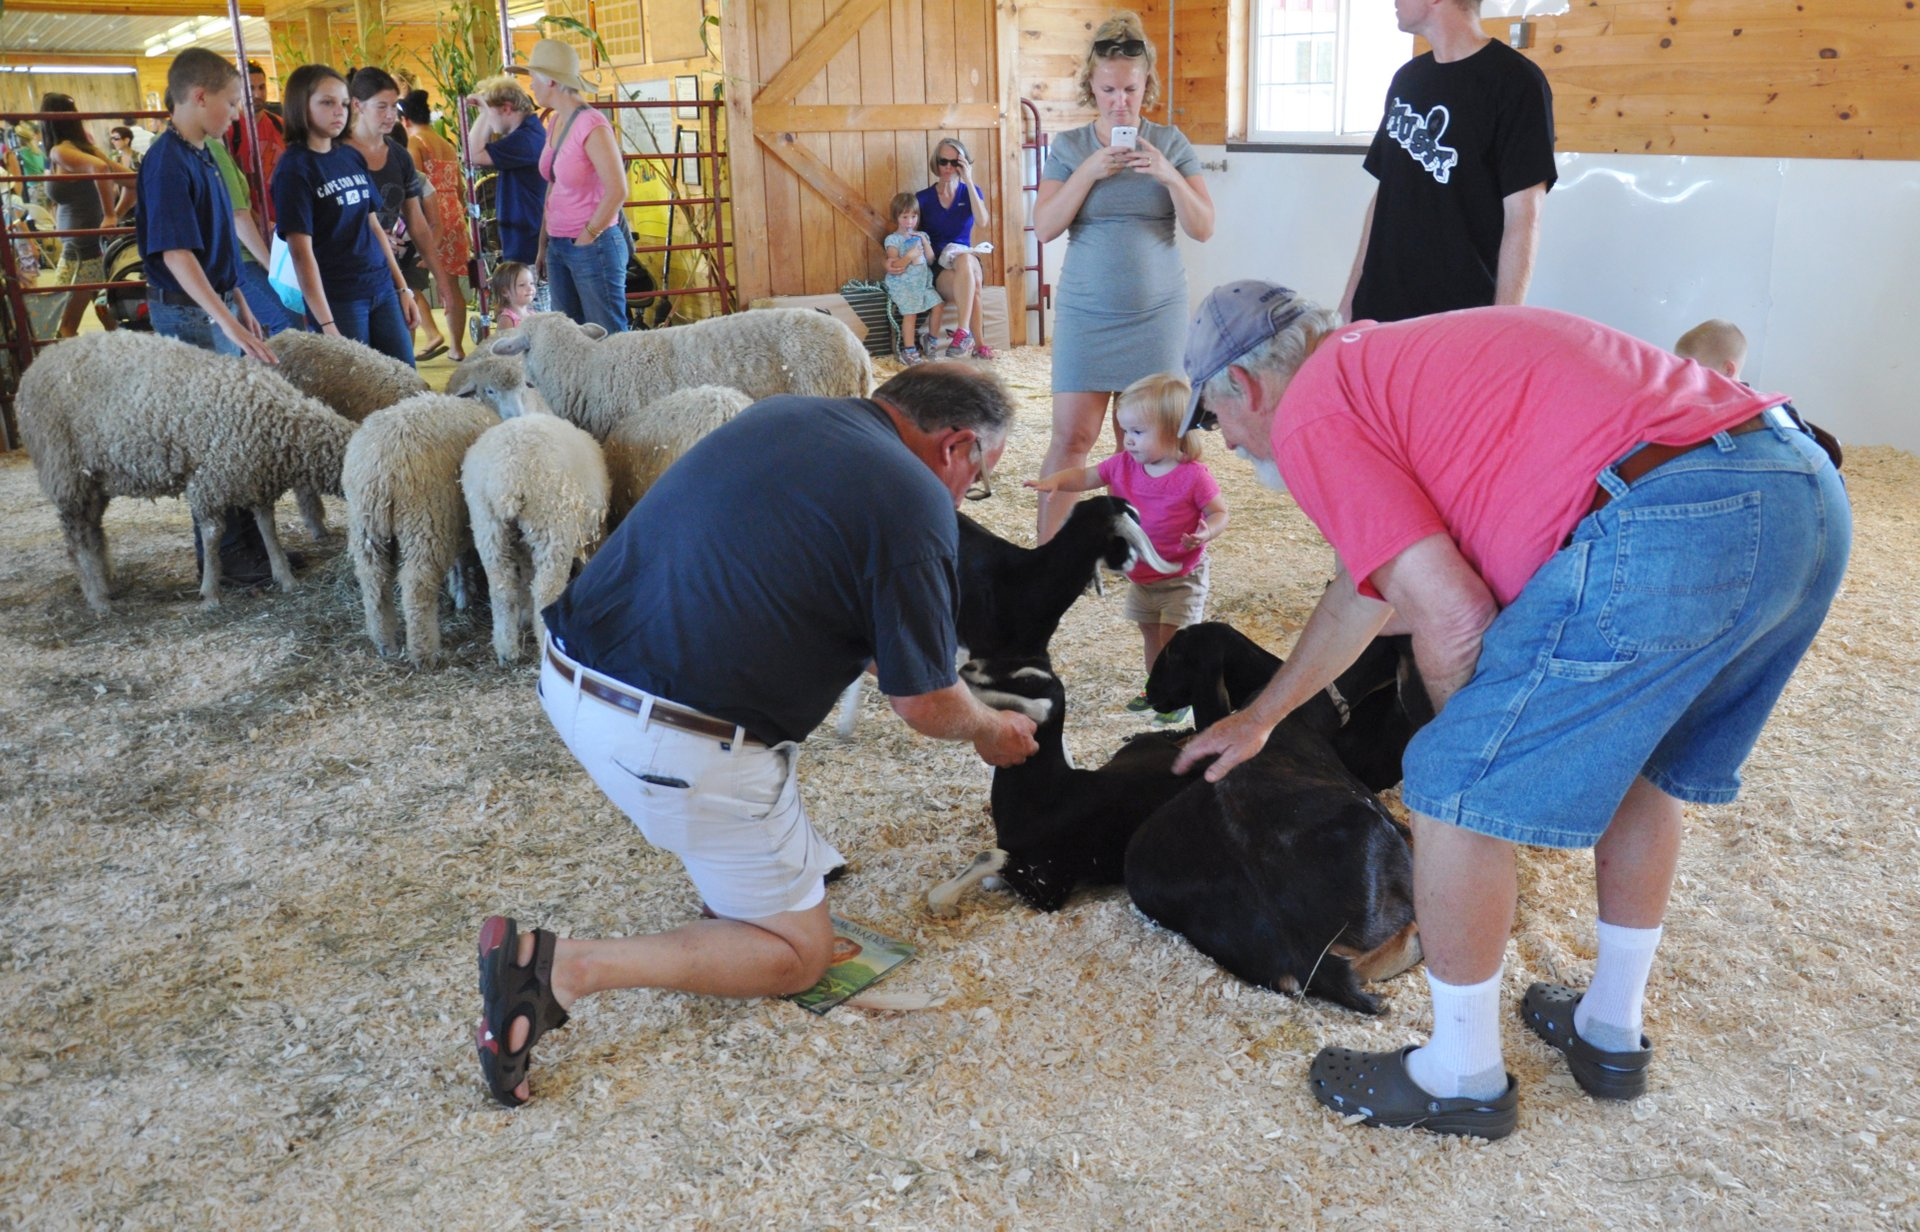 Goshen Fair in Connecticut - Best Season 2020